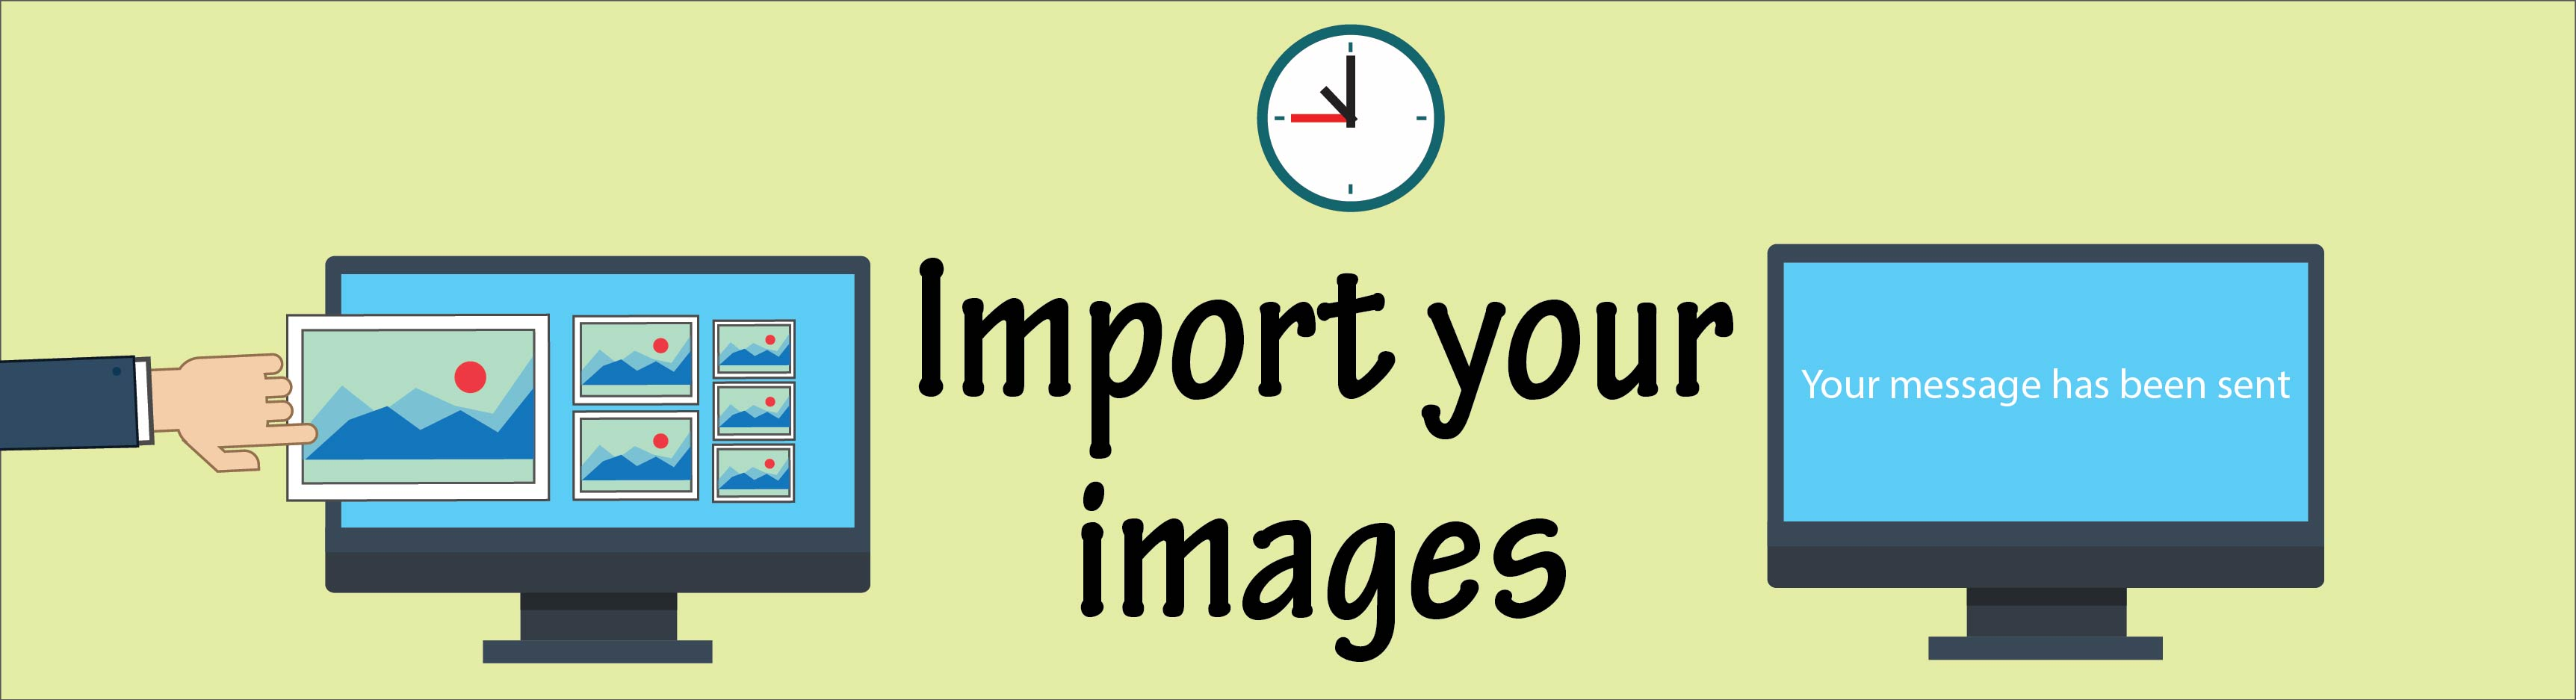 import-your-images